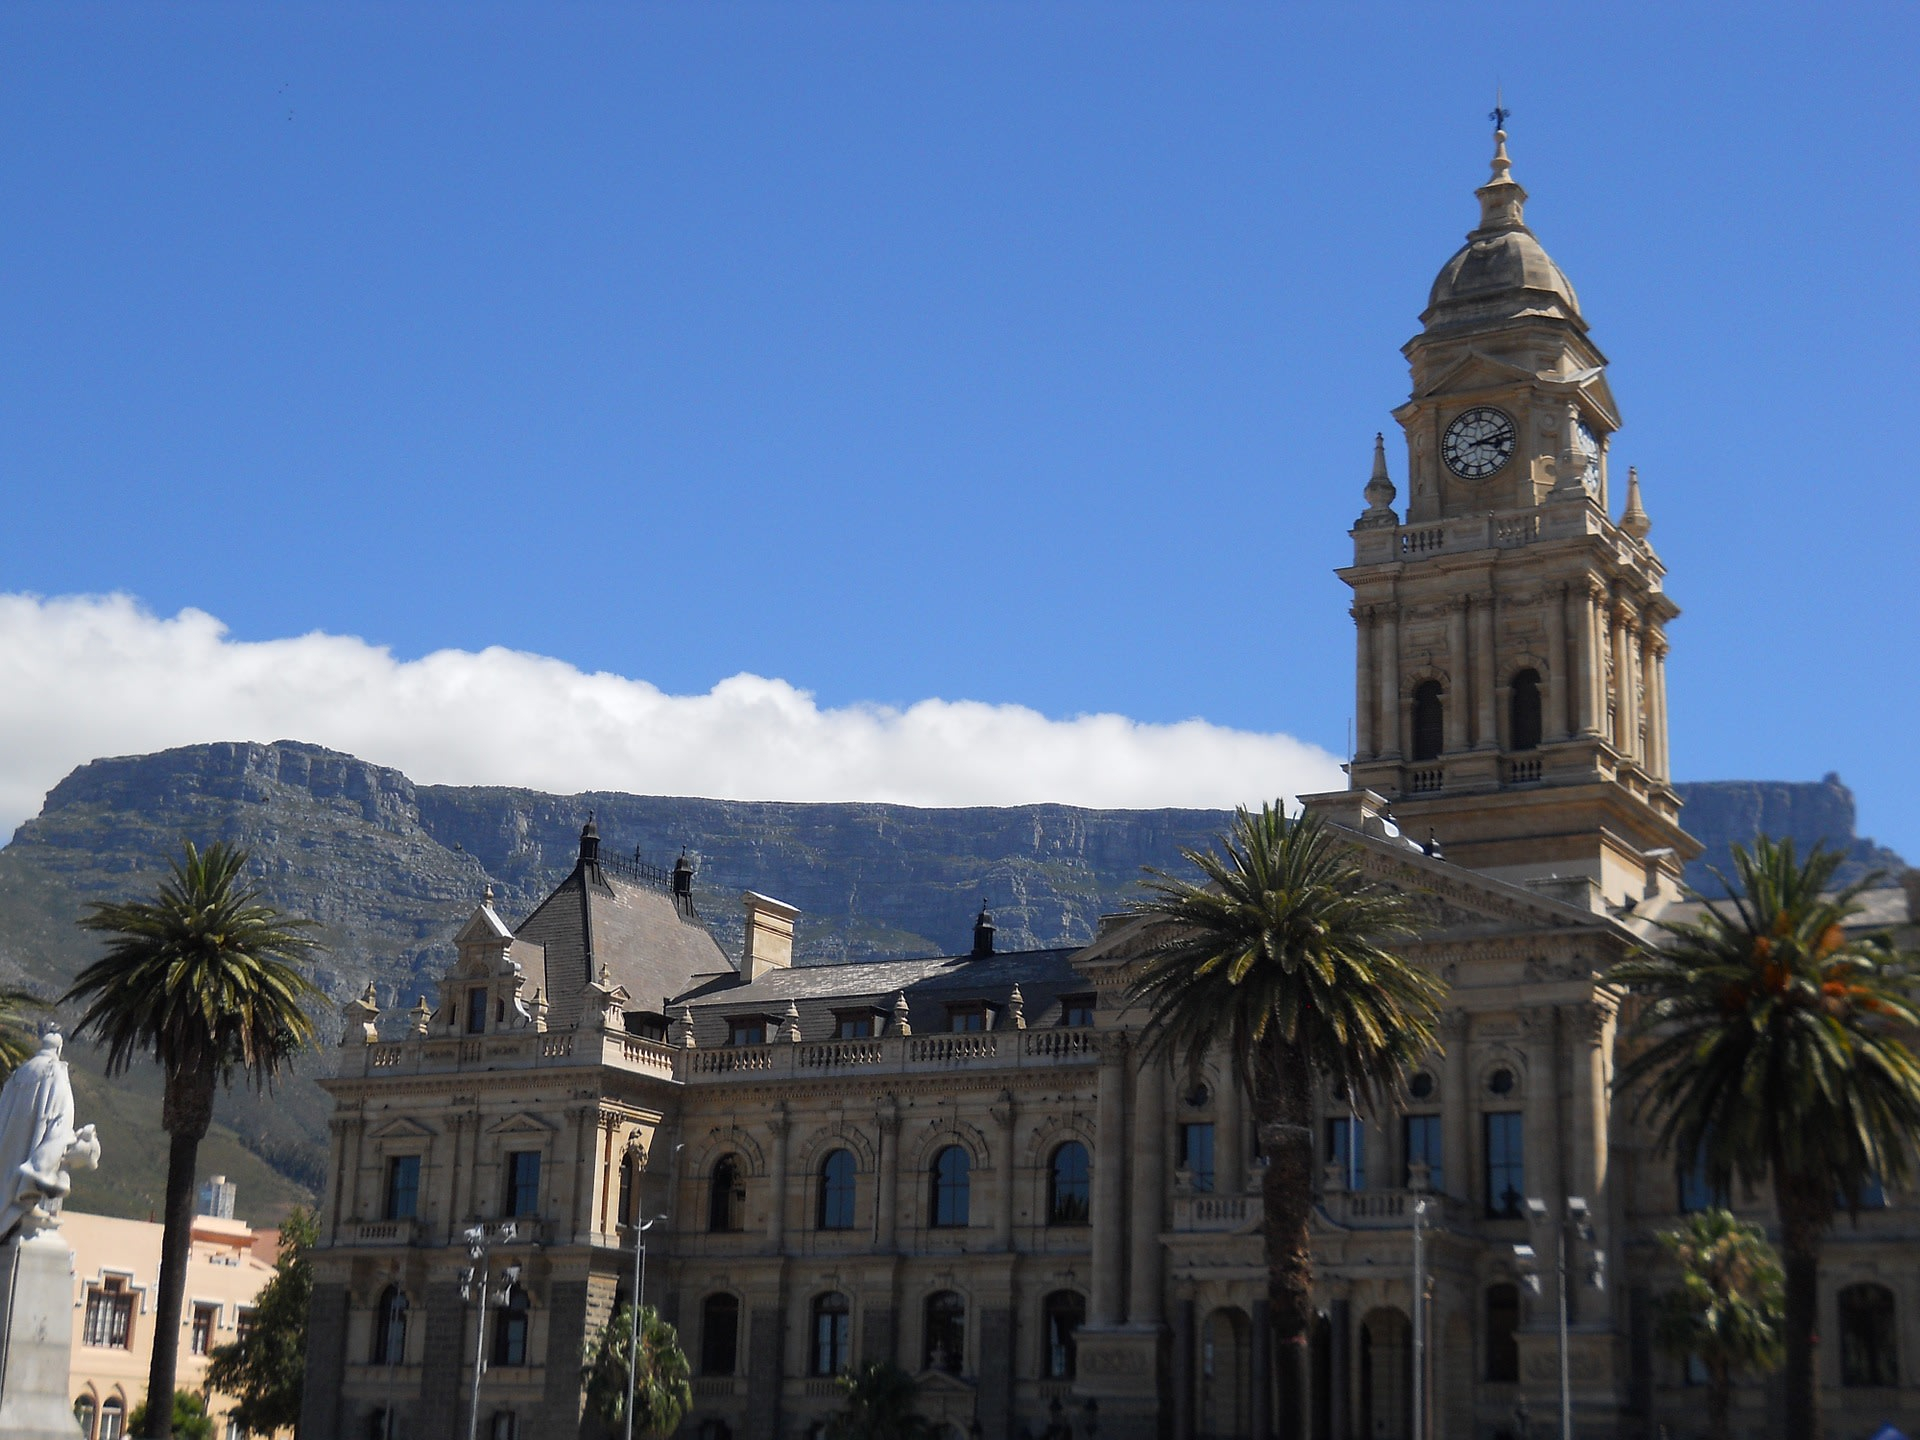 Start your food tour from Town Hall in Cape Town